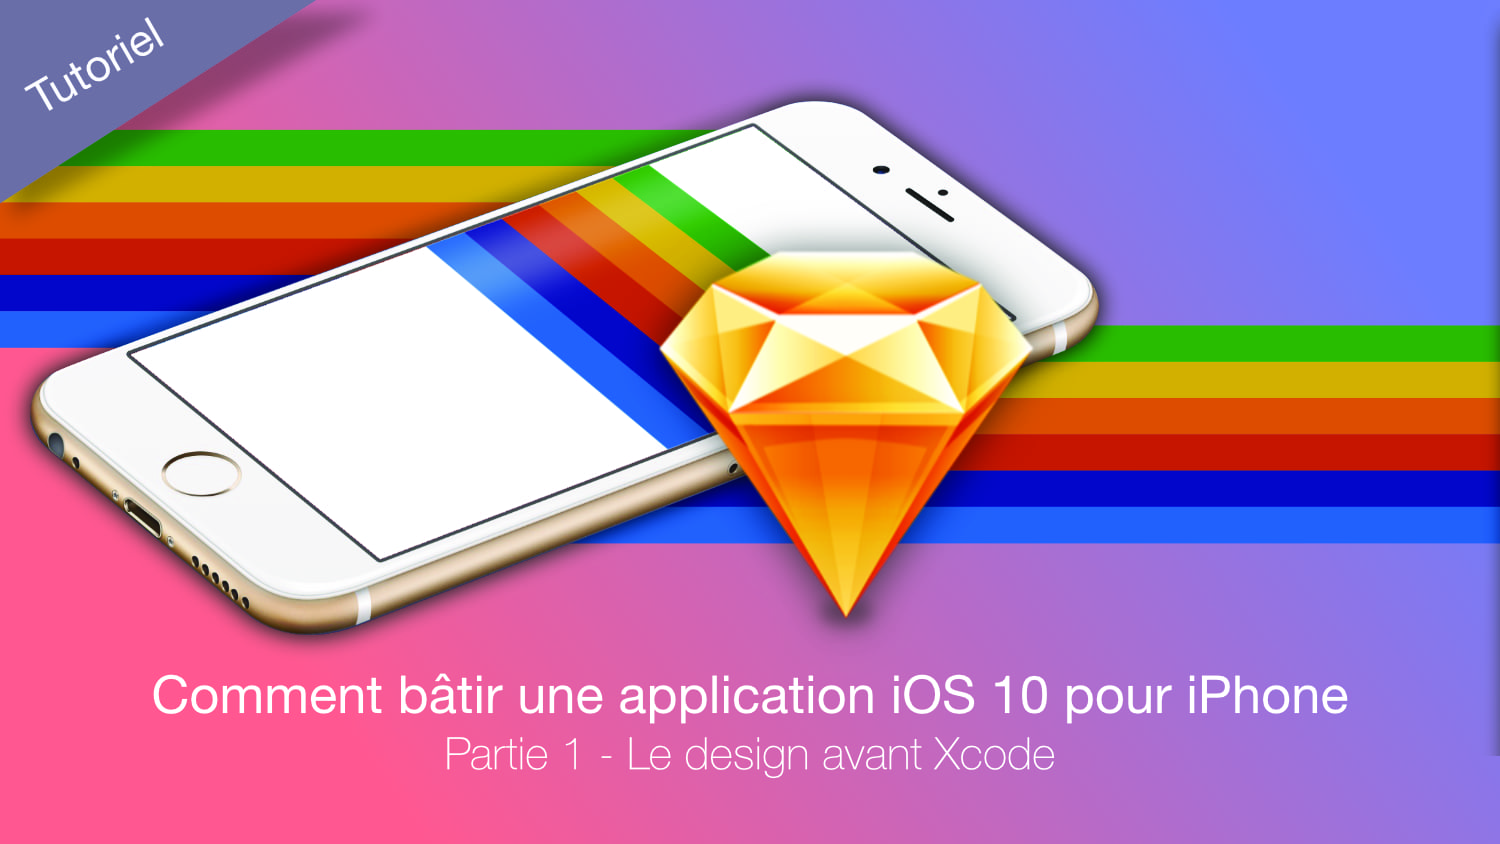 iPhone image et logo de sketch